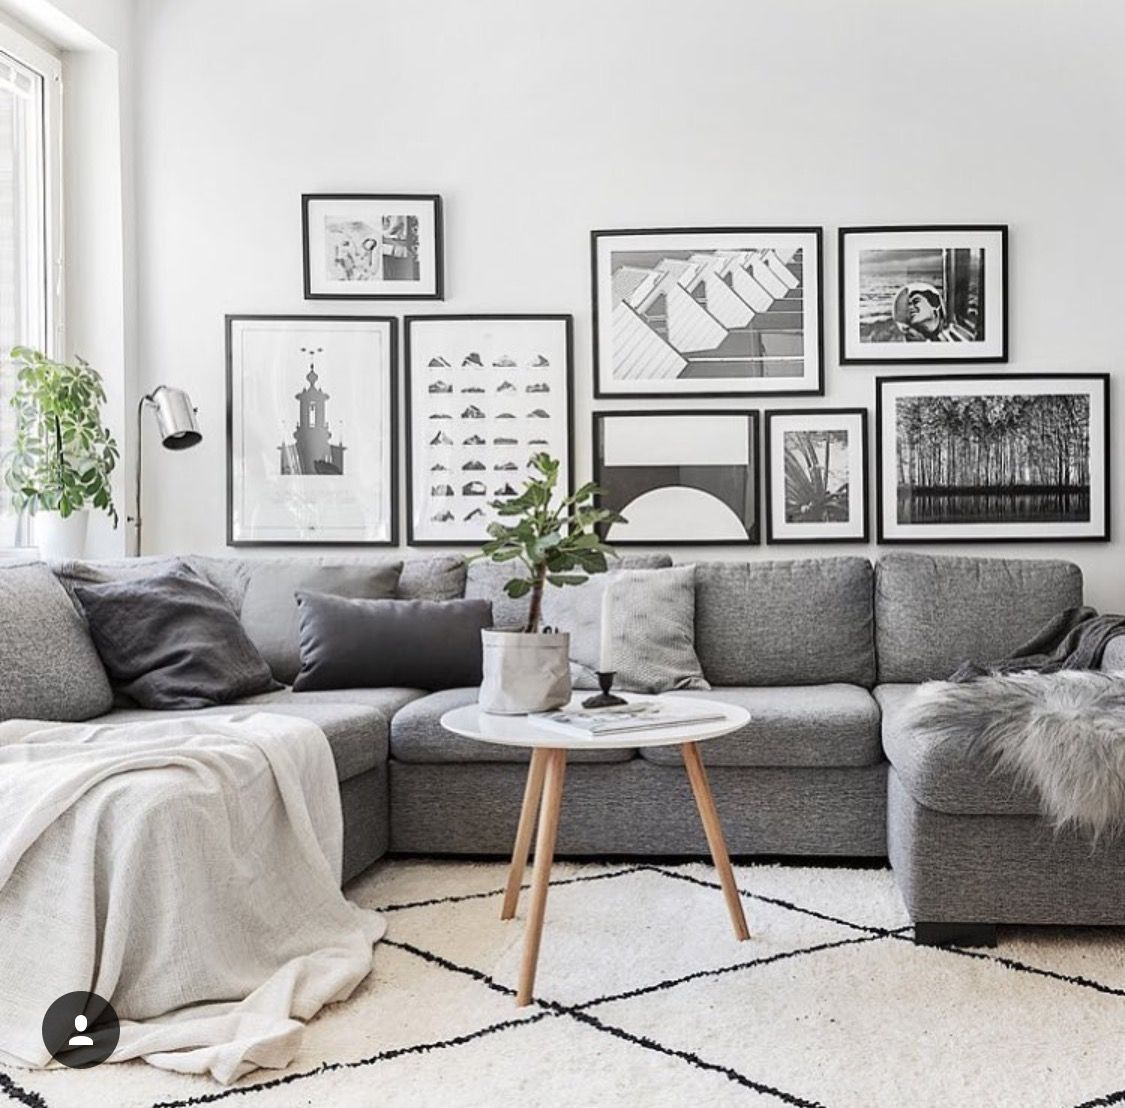 Pinterest Decorating Ideas For Living Room: Pin By Cat Rose On House Inspo